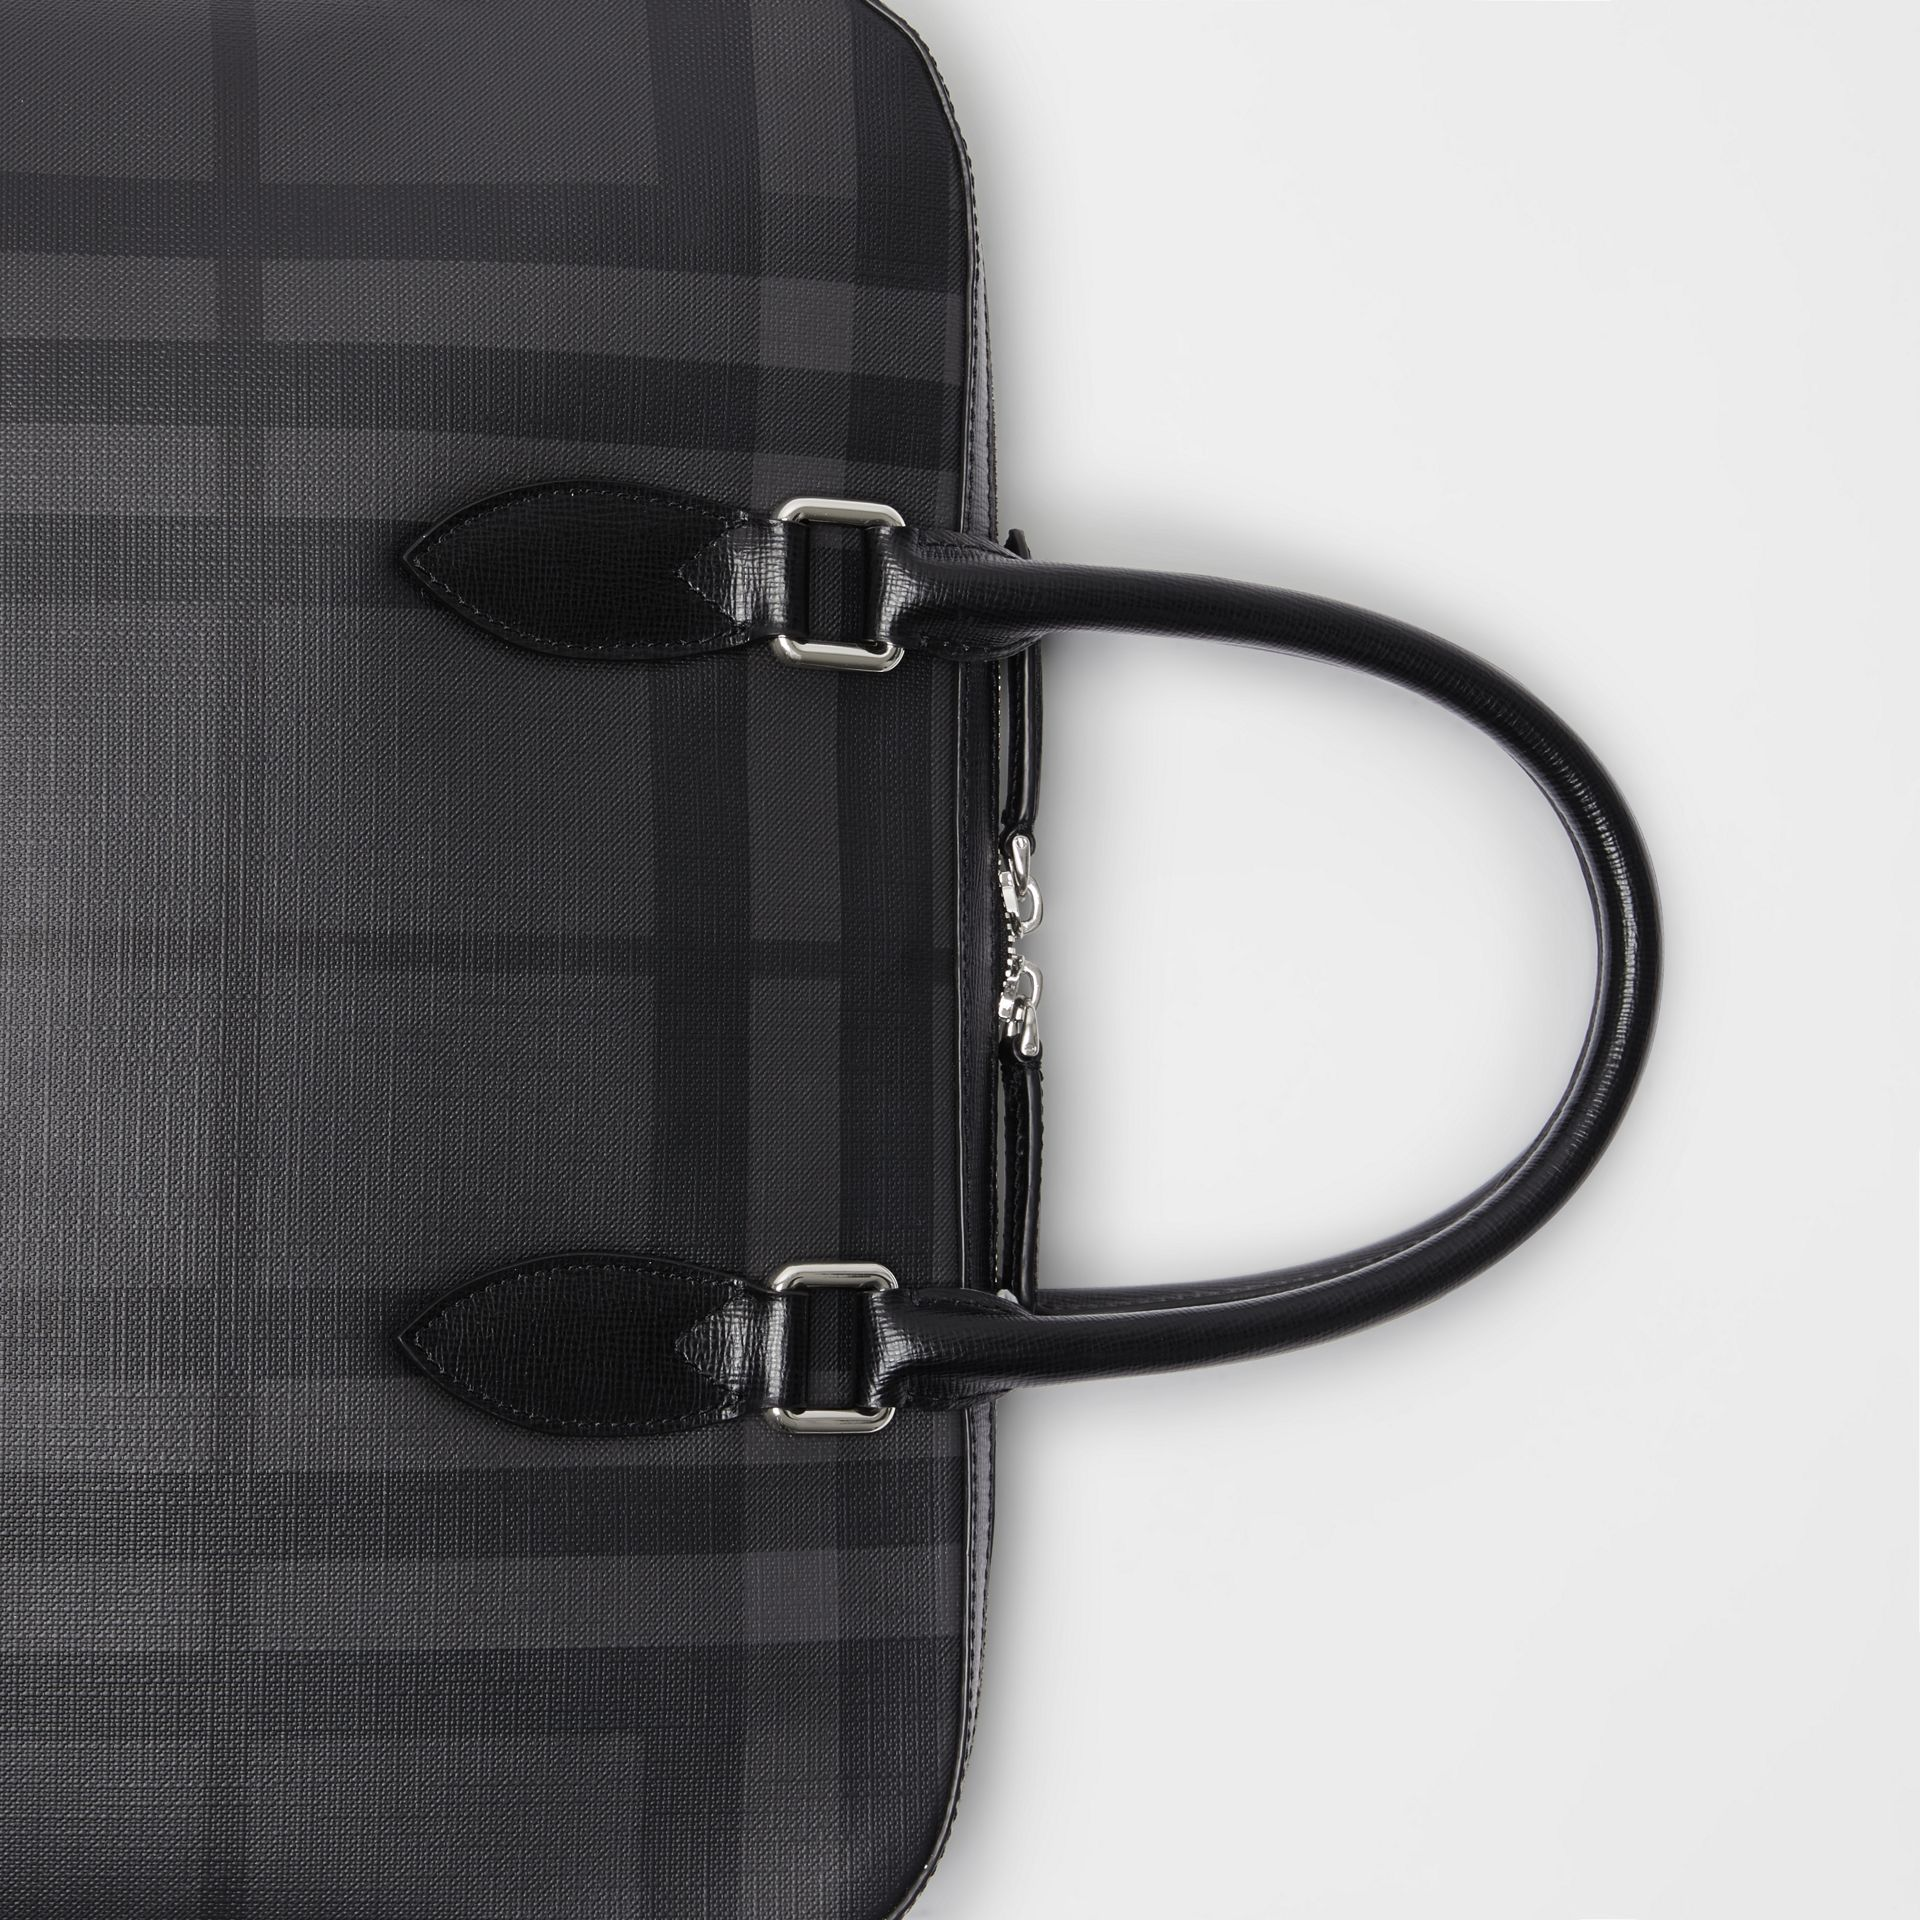 Attaché-case medium à motif London check avec éléments en cuir (Anthracite/noir) - Homme | Burberry Canada - photo de la galerie 1